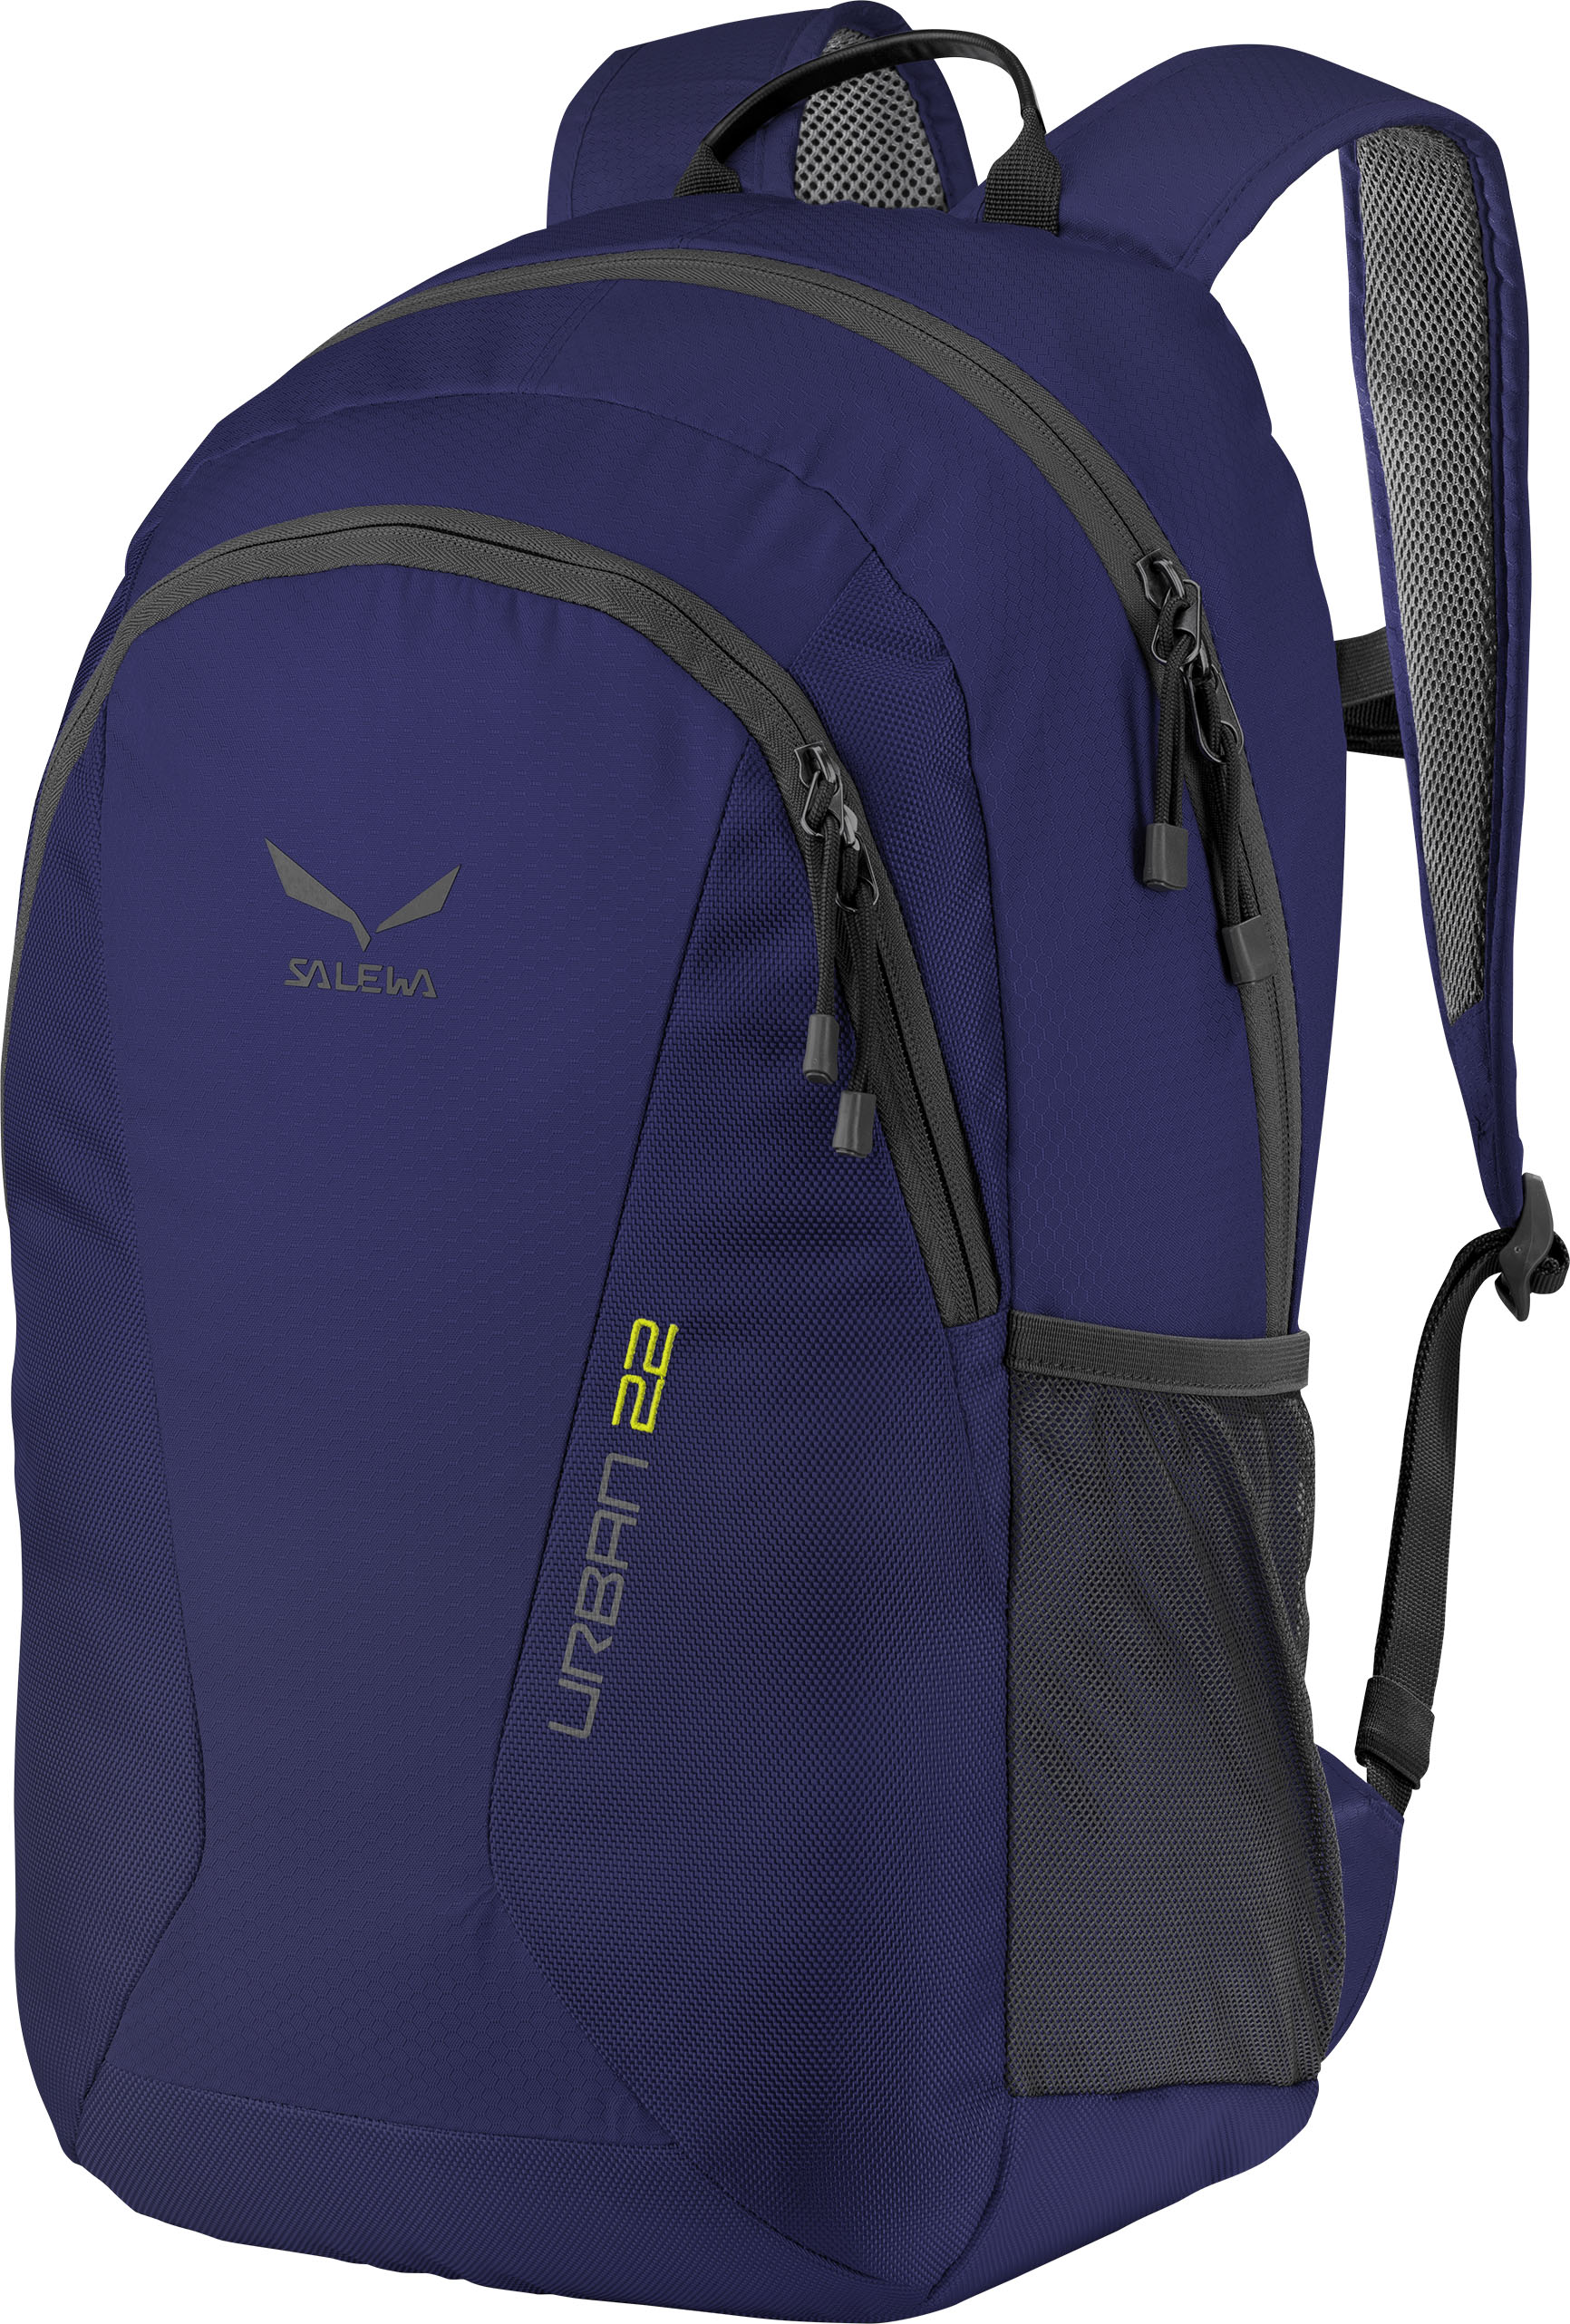 Рюкзак Salewa 2015 Daypacks URBAN 22 BP BRIGHT NIGHT /